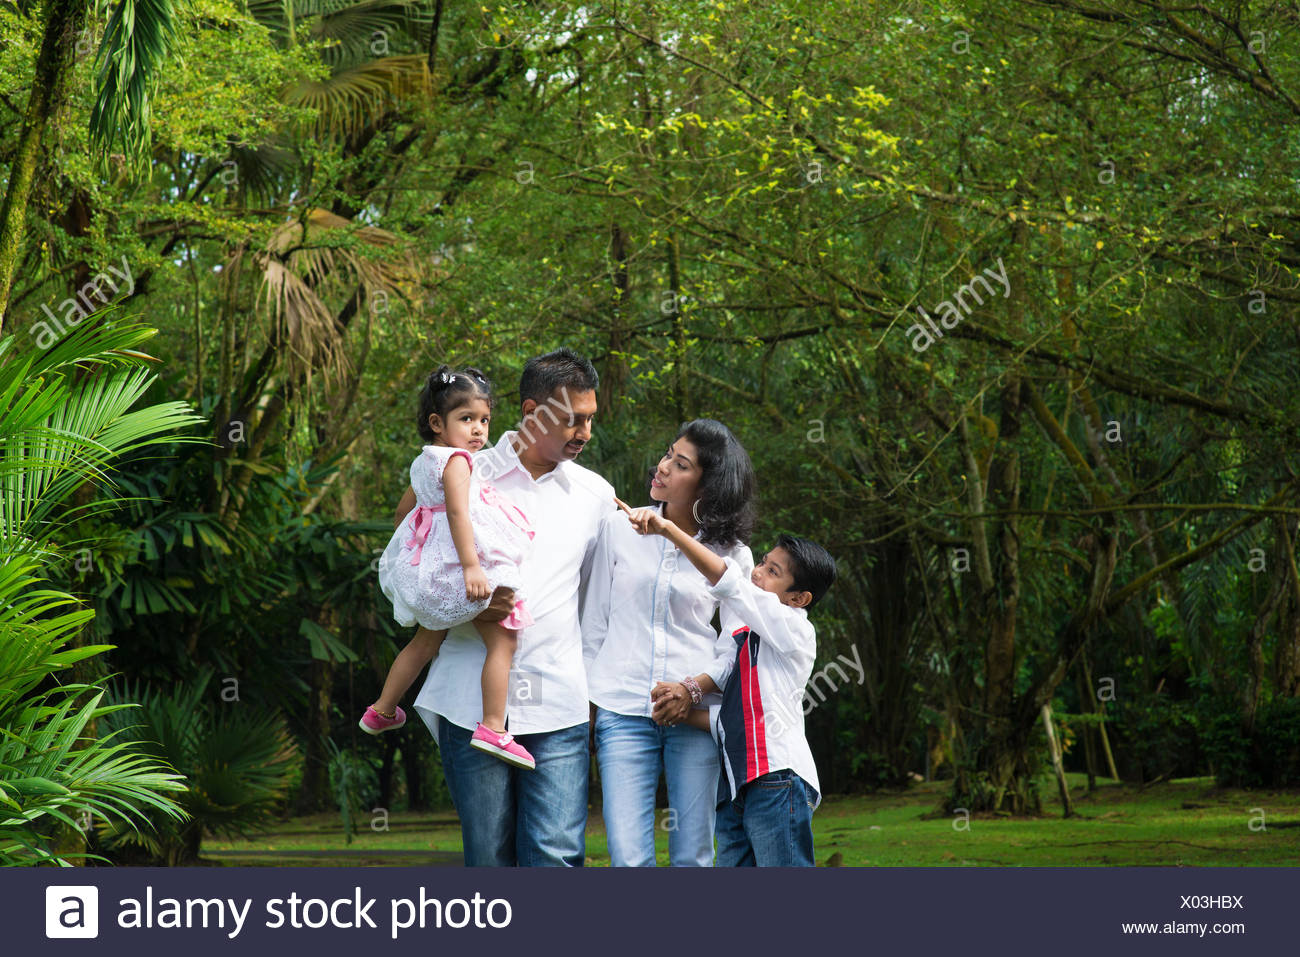 Indian family at outdoor. Parents and children walking on garden path. Exploring nature, leisure lifestyle. - Stock Image